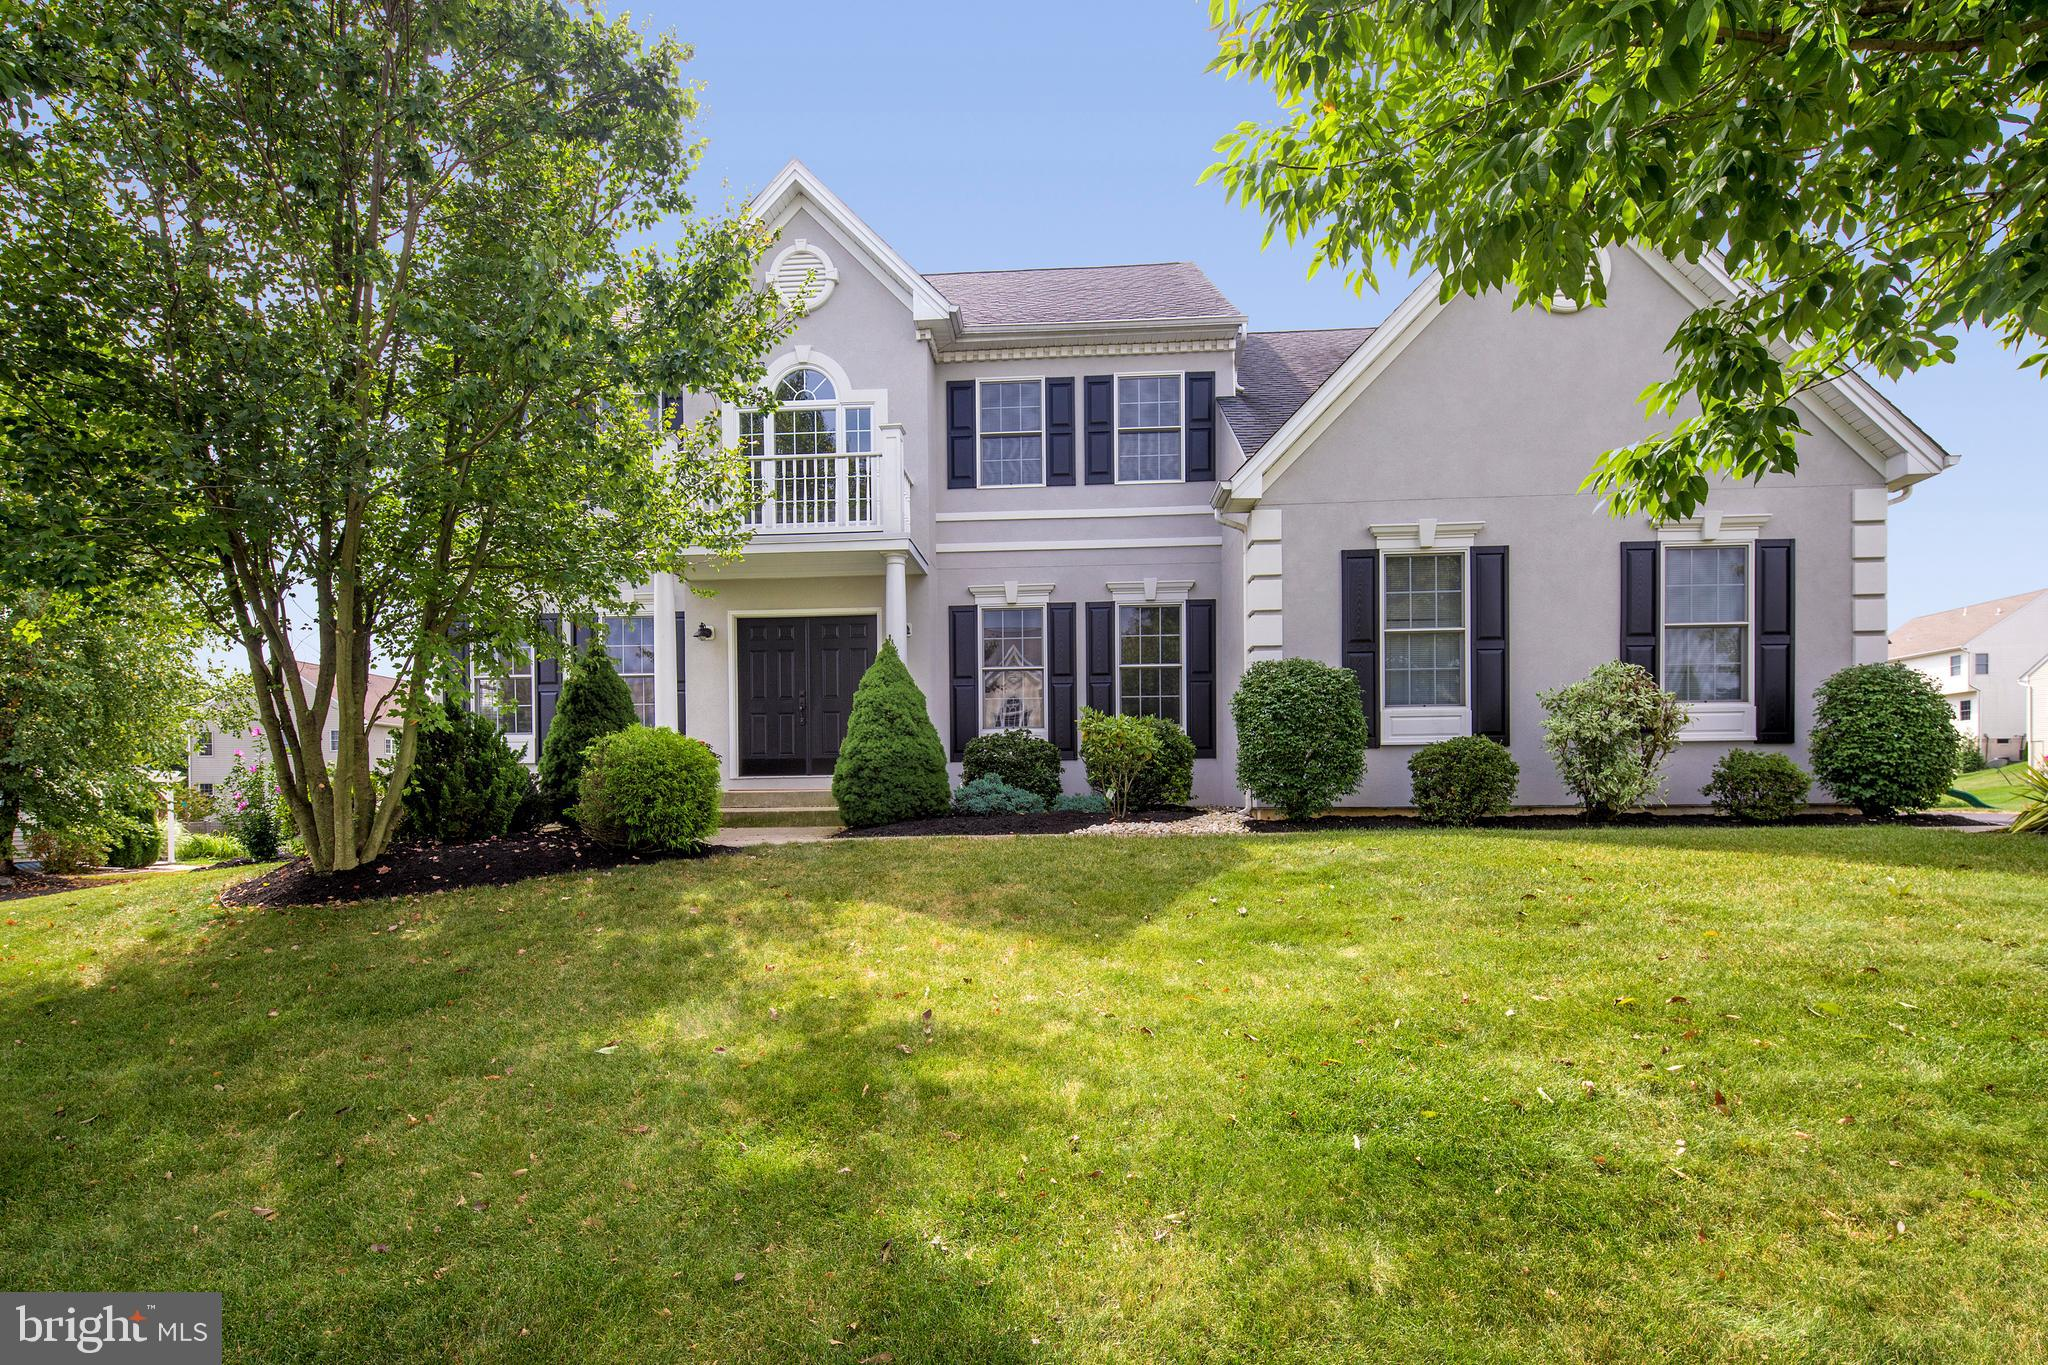 3568 COURTNEY DRIVE, CENTER VALLEY, PA 18034